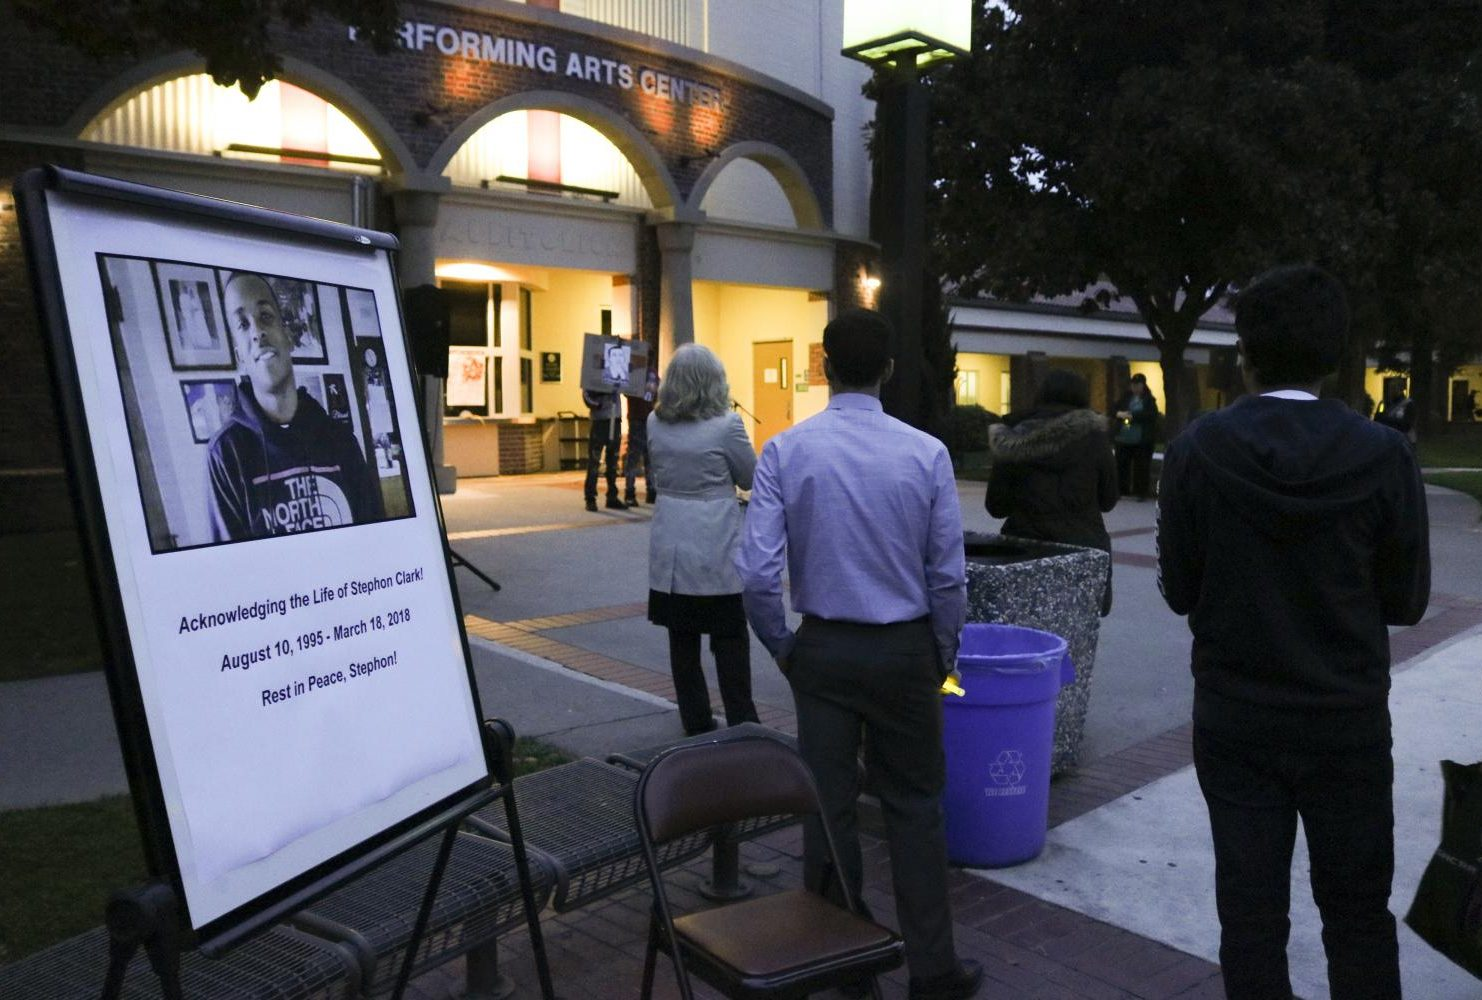 Attendees of the vigil watch the organizers address the crowd in front of the Performing Arts Center at Sacramento City College on March 7, 2019. The group spoke about the importance of education and its role in activism. (Photo by Hannah Yates)